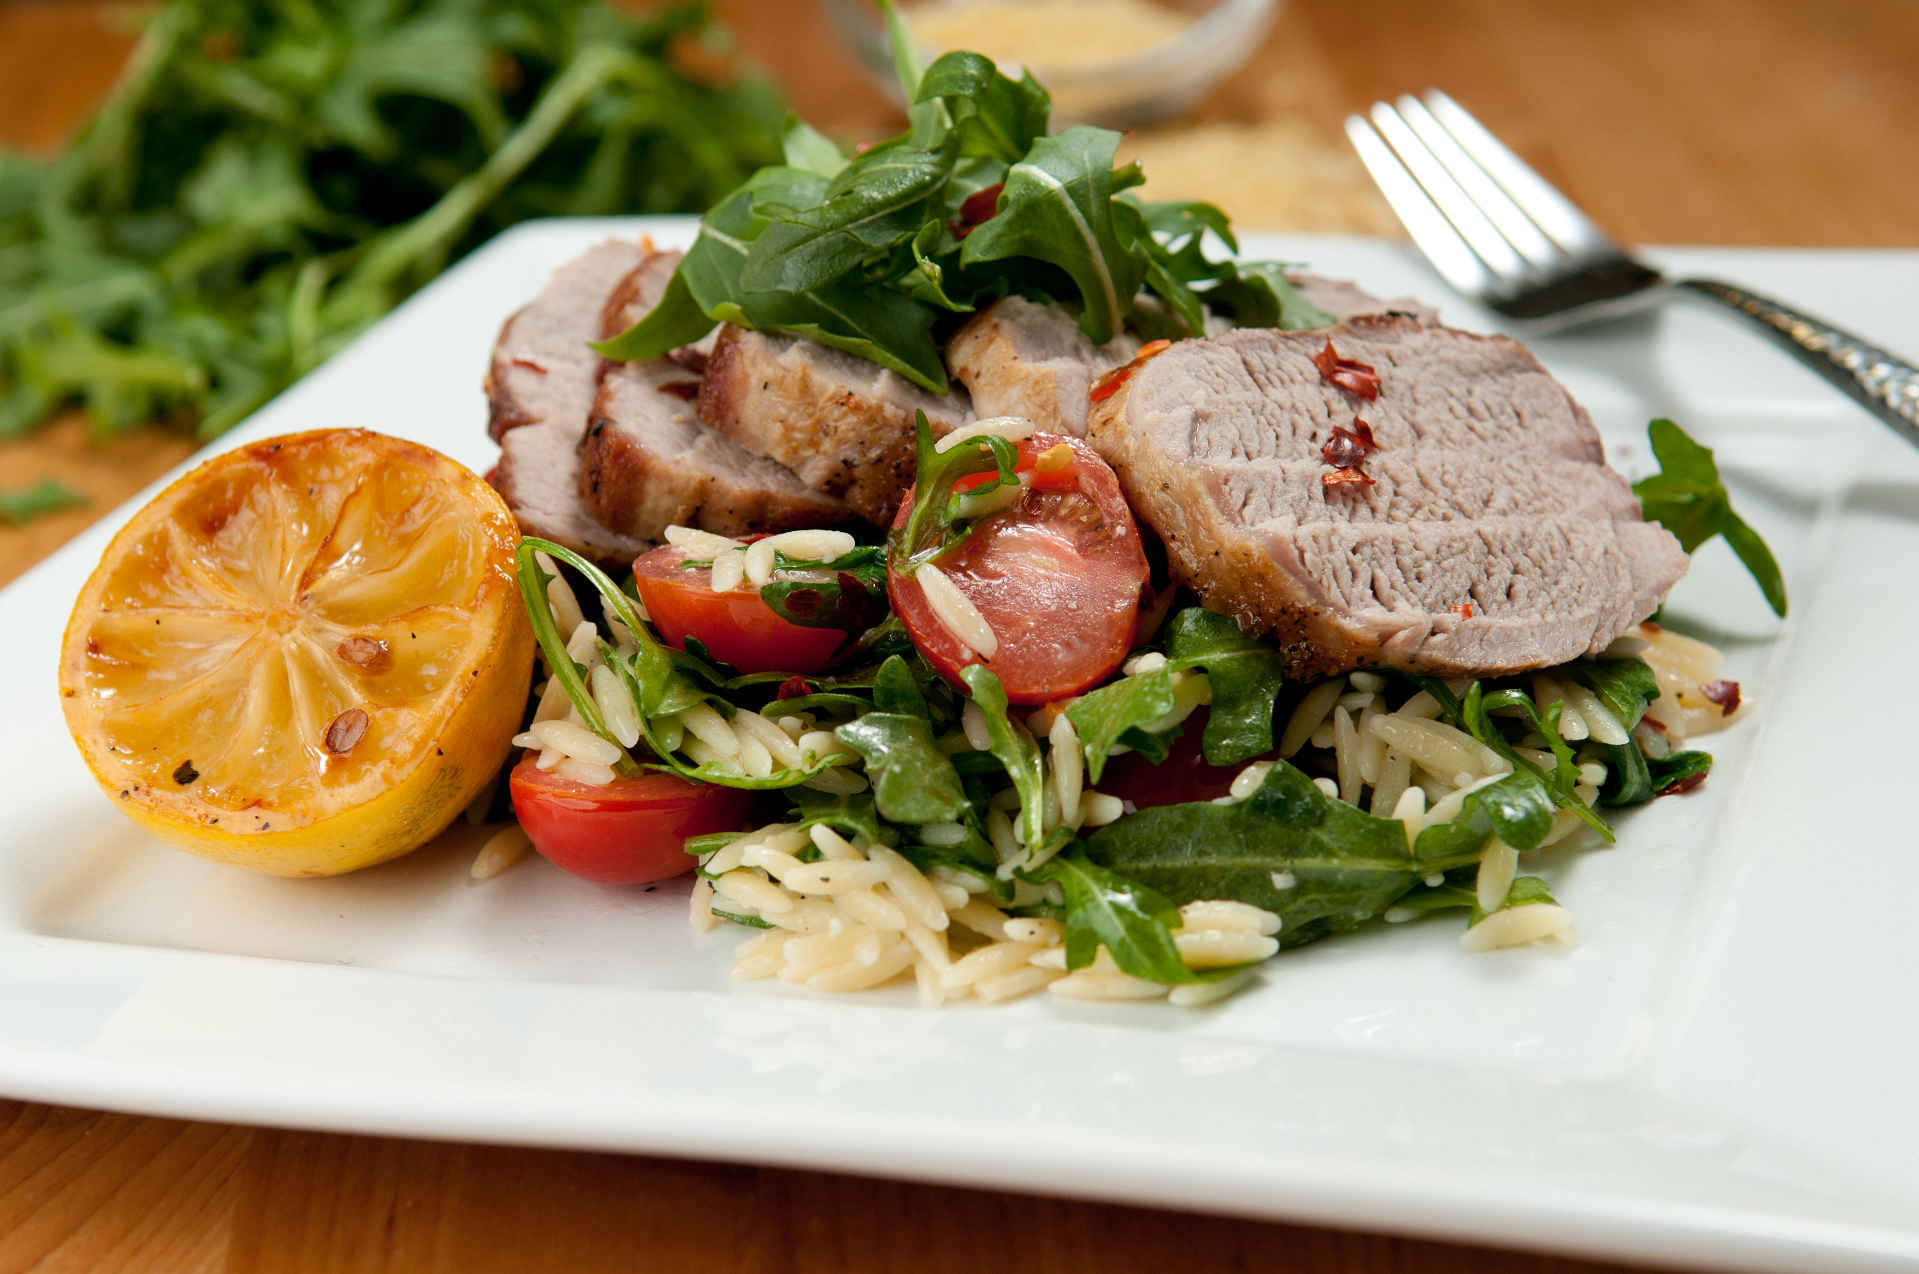 Pork_tenderloin_with_orzo_plated